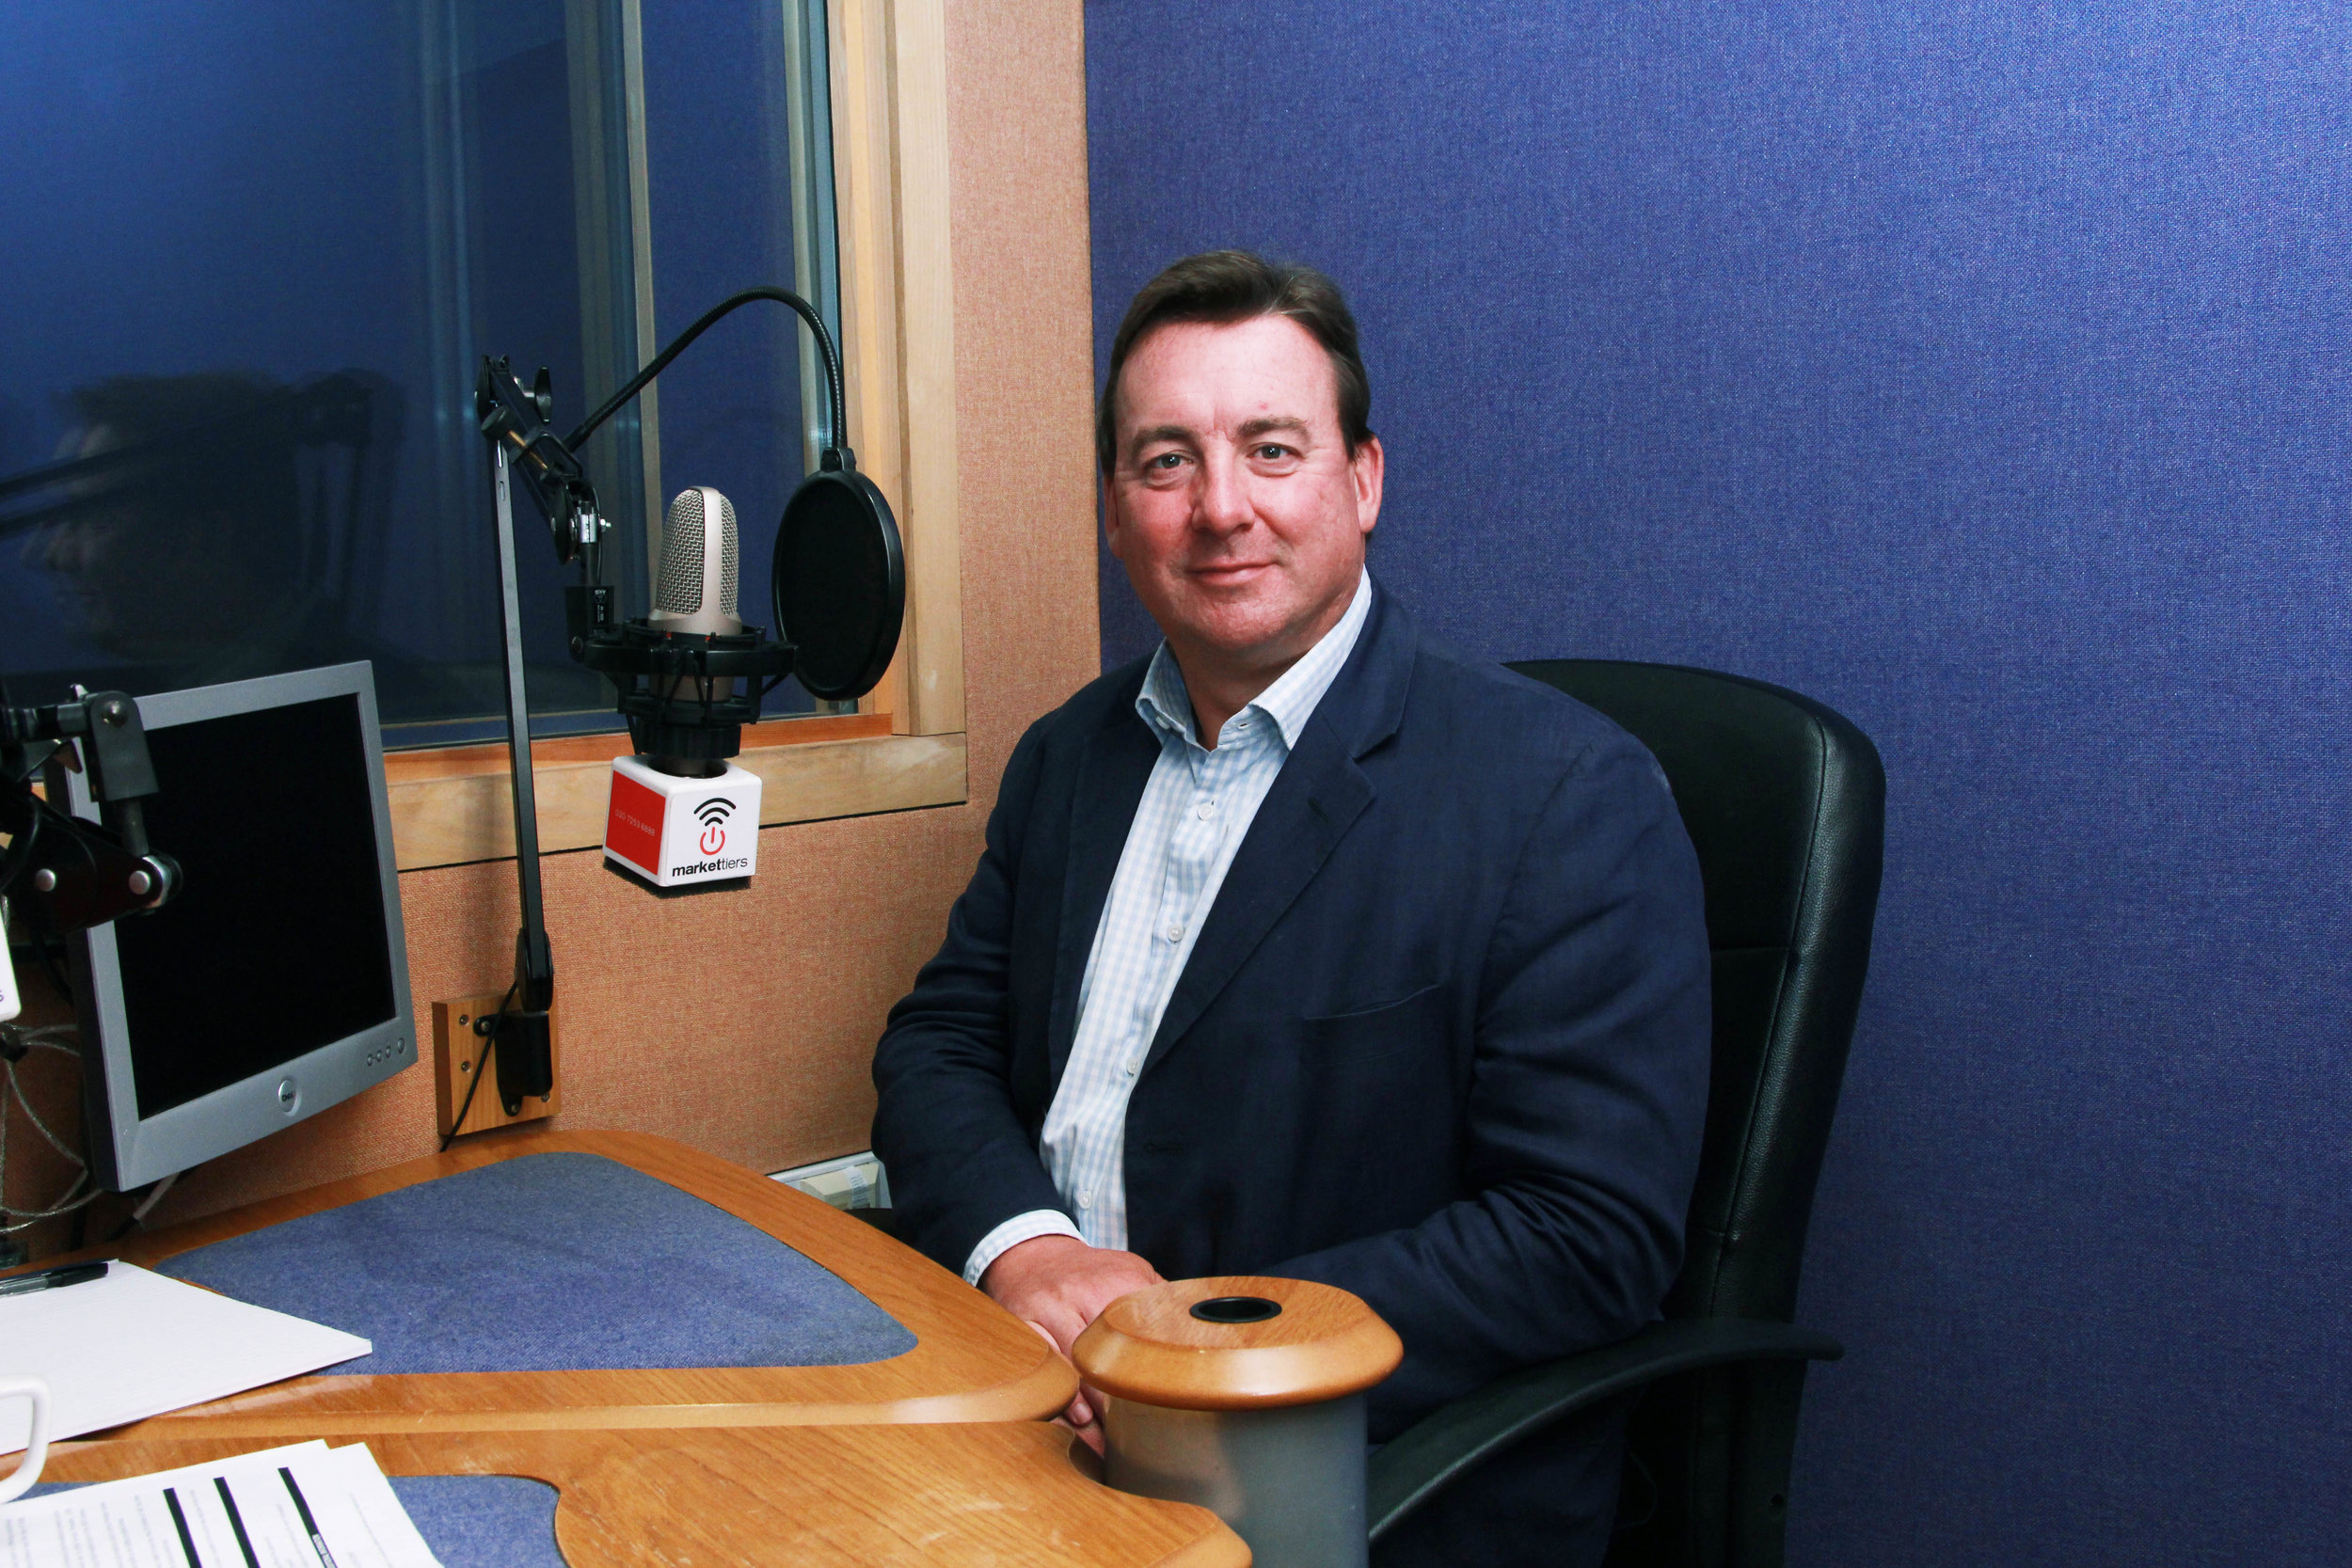 Avanti Chief Executive David Williams joined Will on the phone from London to announce this exciting initiative this week.